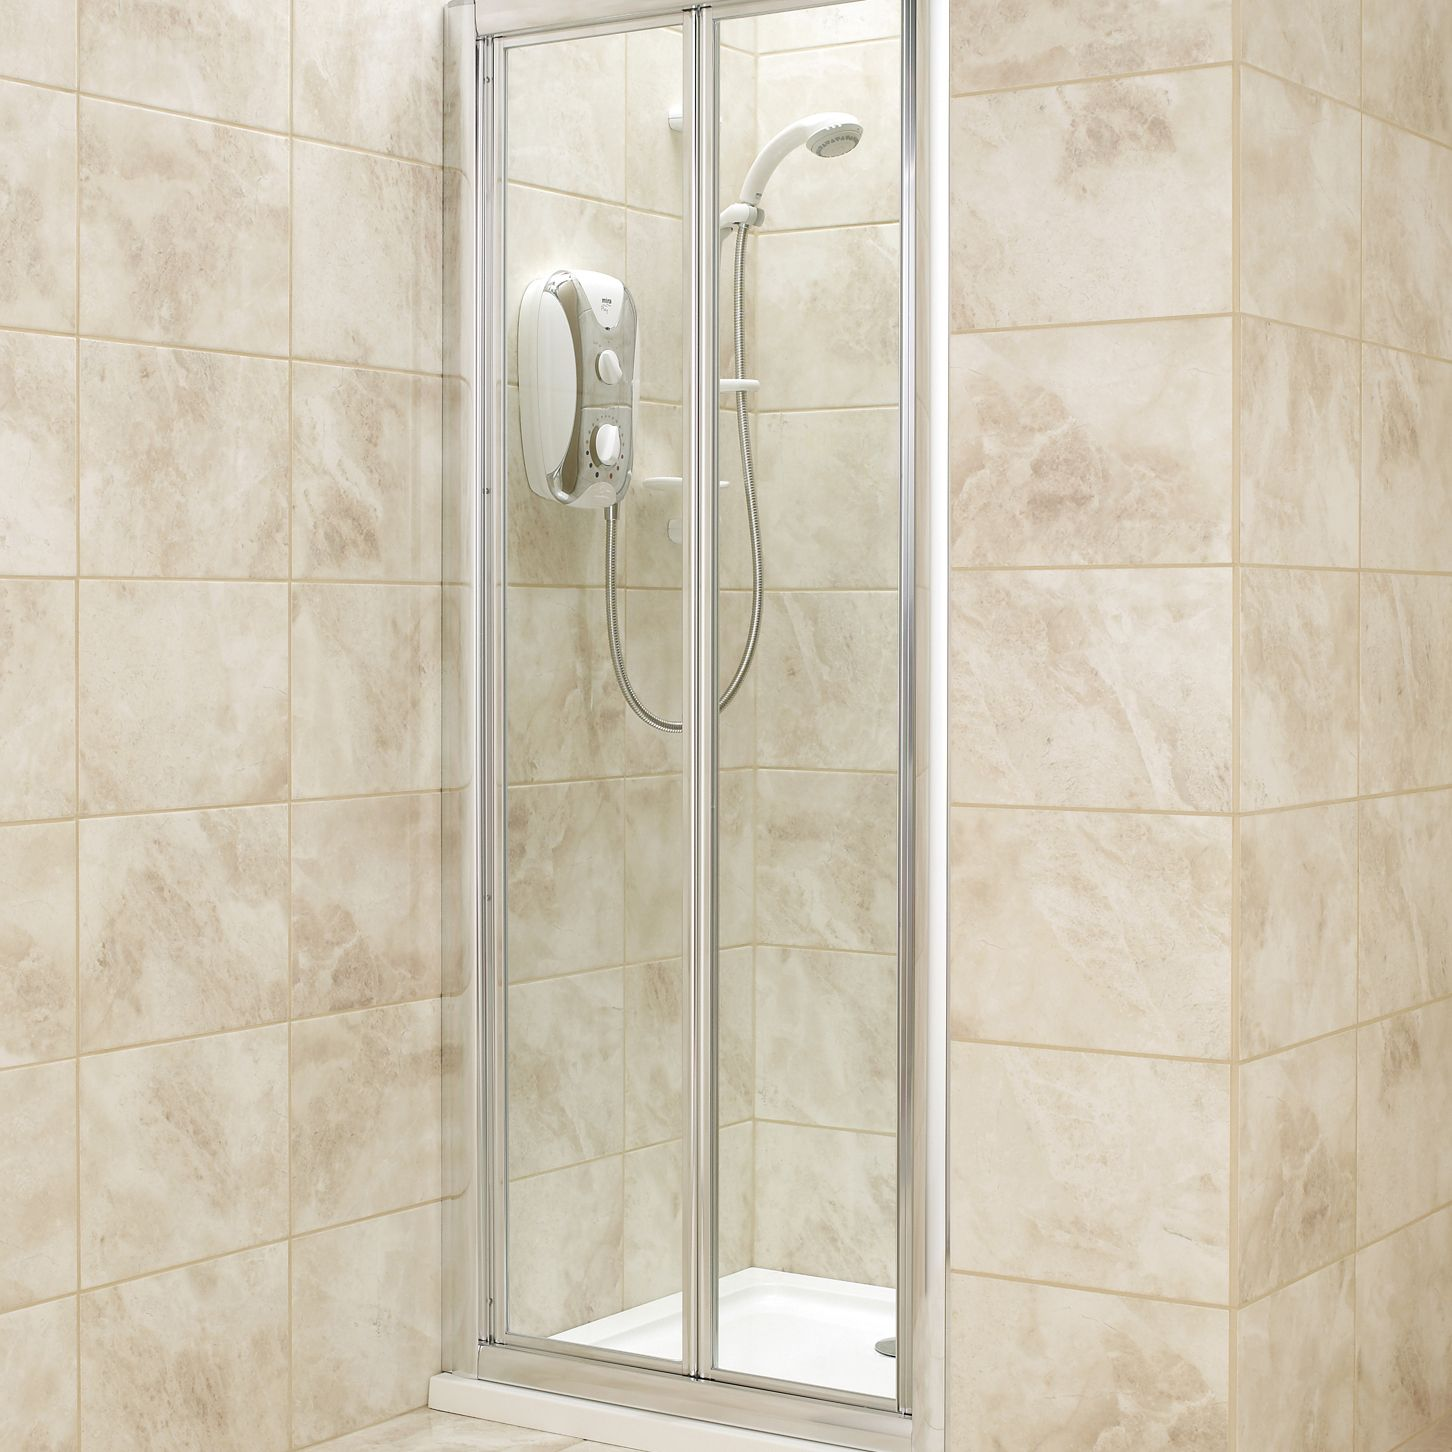 Bq Bi Fold Shower Door W760mm Departments Diy At Bq